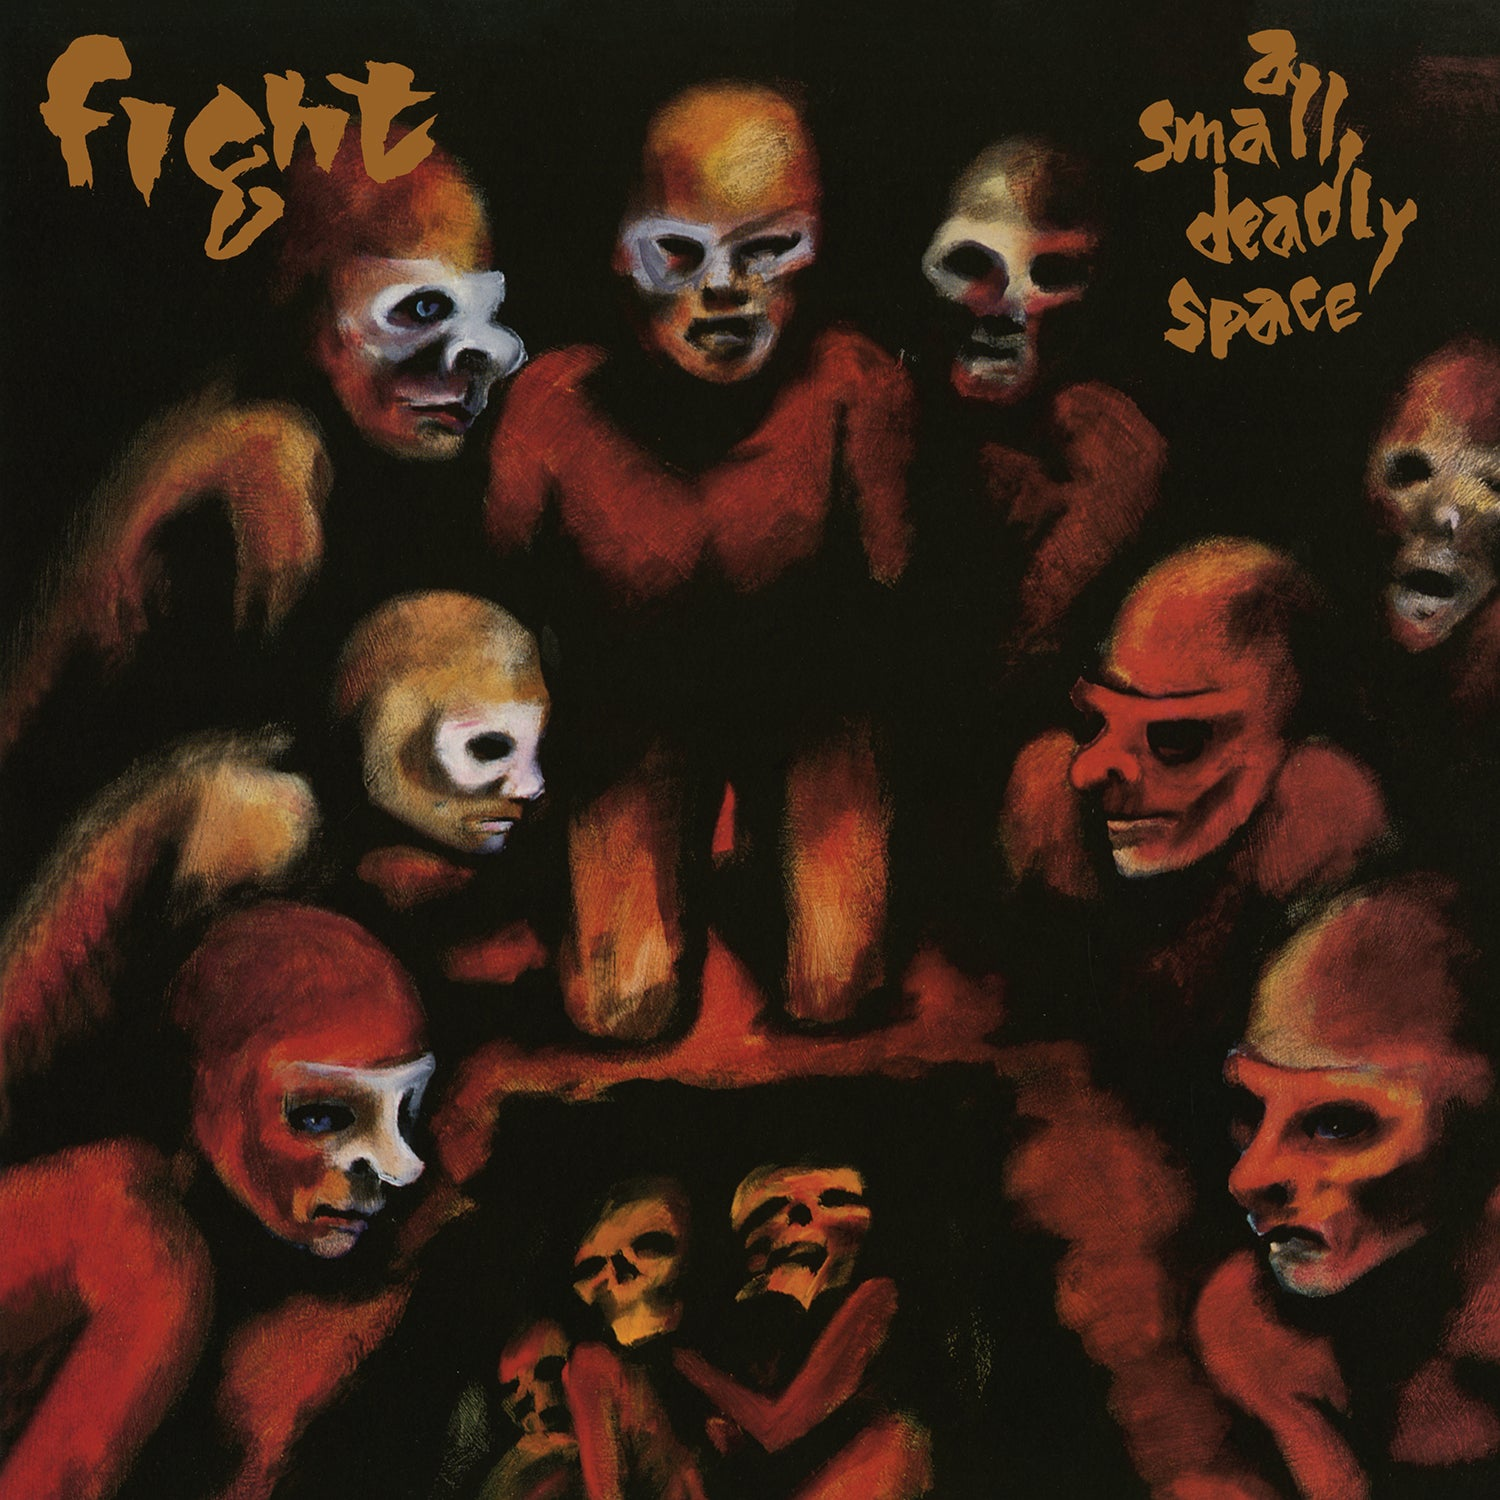 Fight - A Small Deadly Space (RSD 2020 Drop One) Red Black Marble Colour Vinyl Record Album